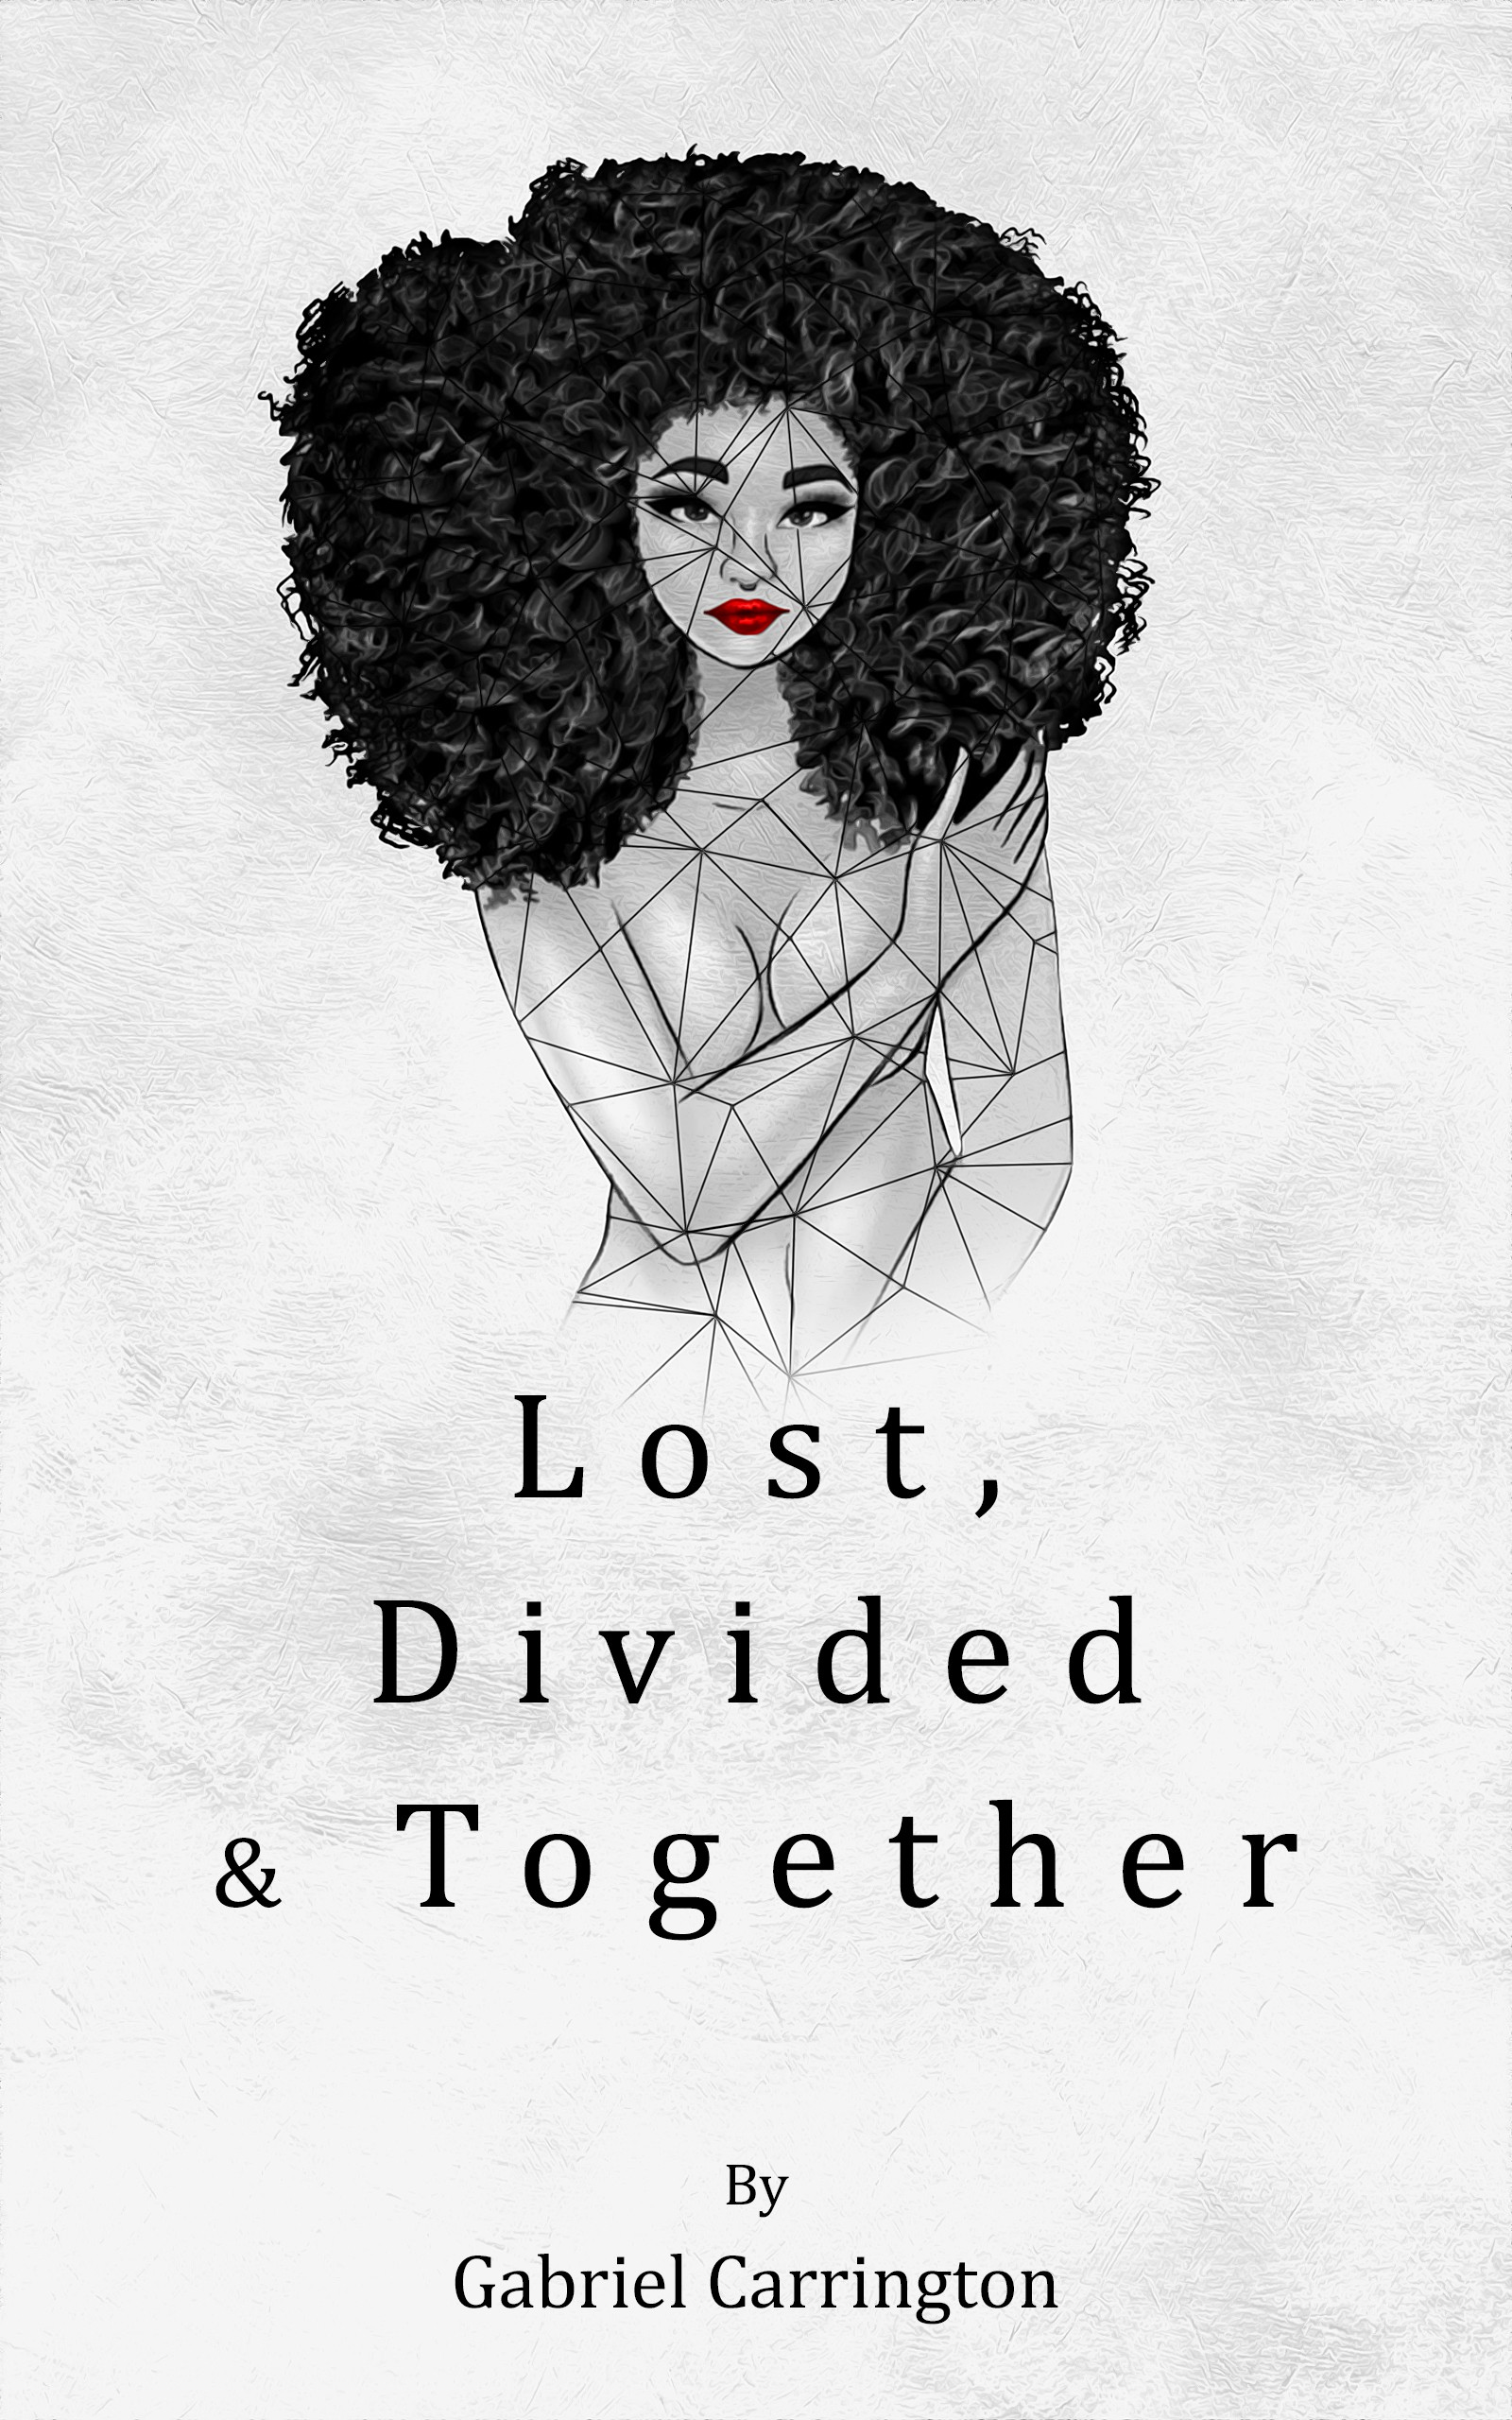 Lost, Divided, & Together